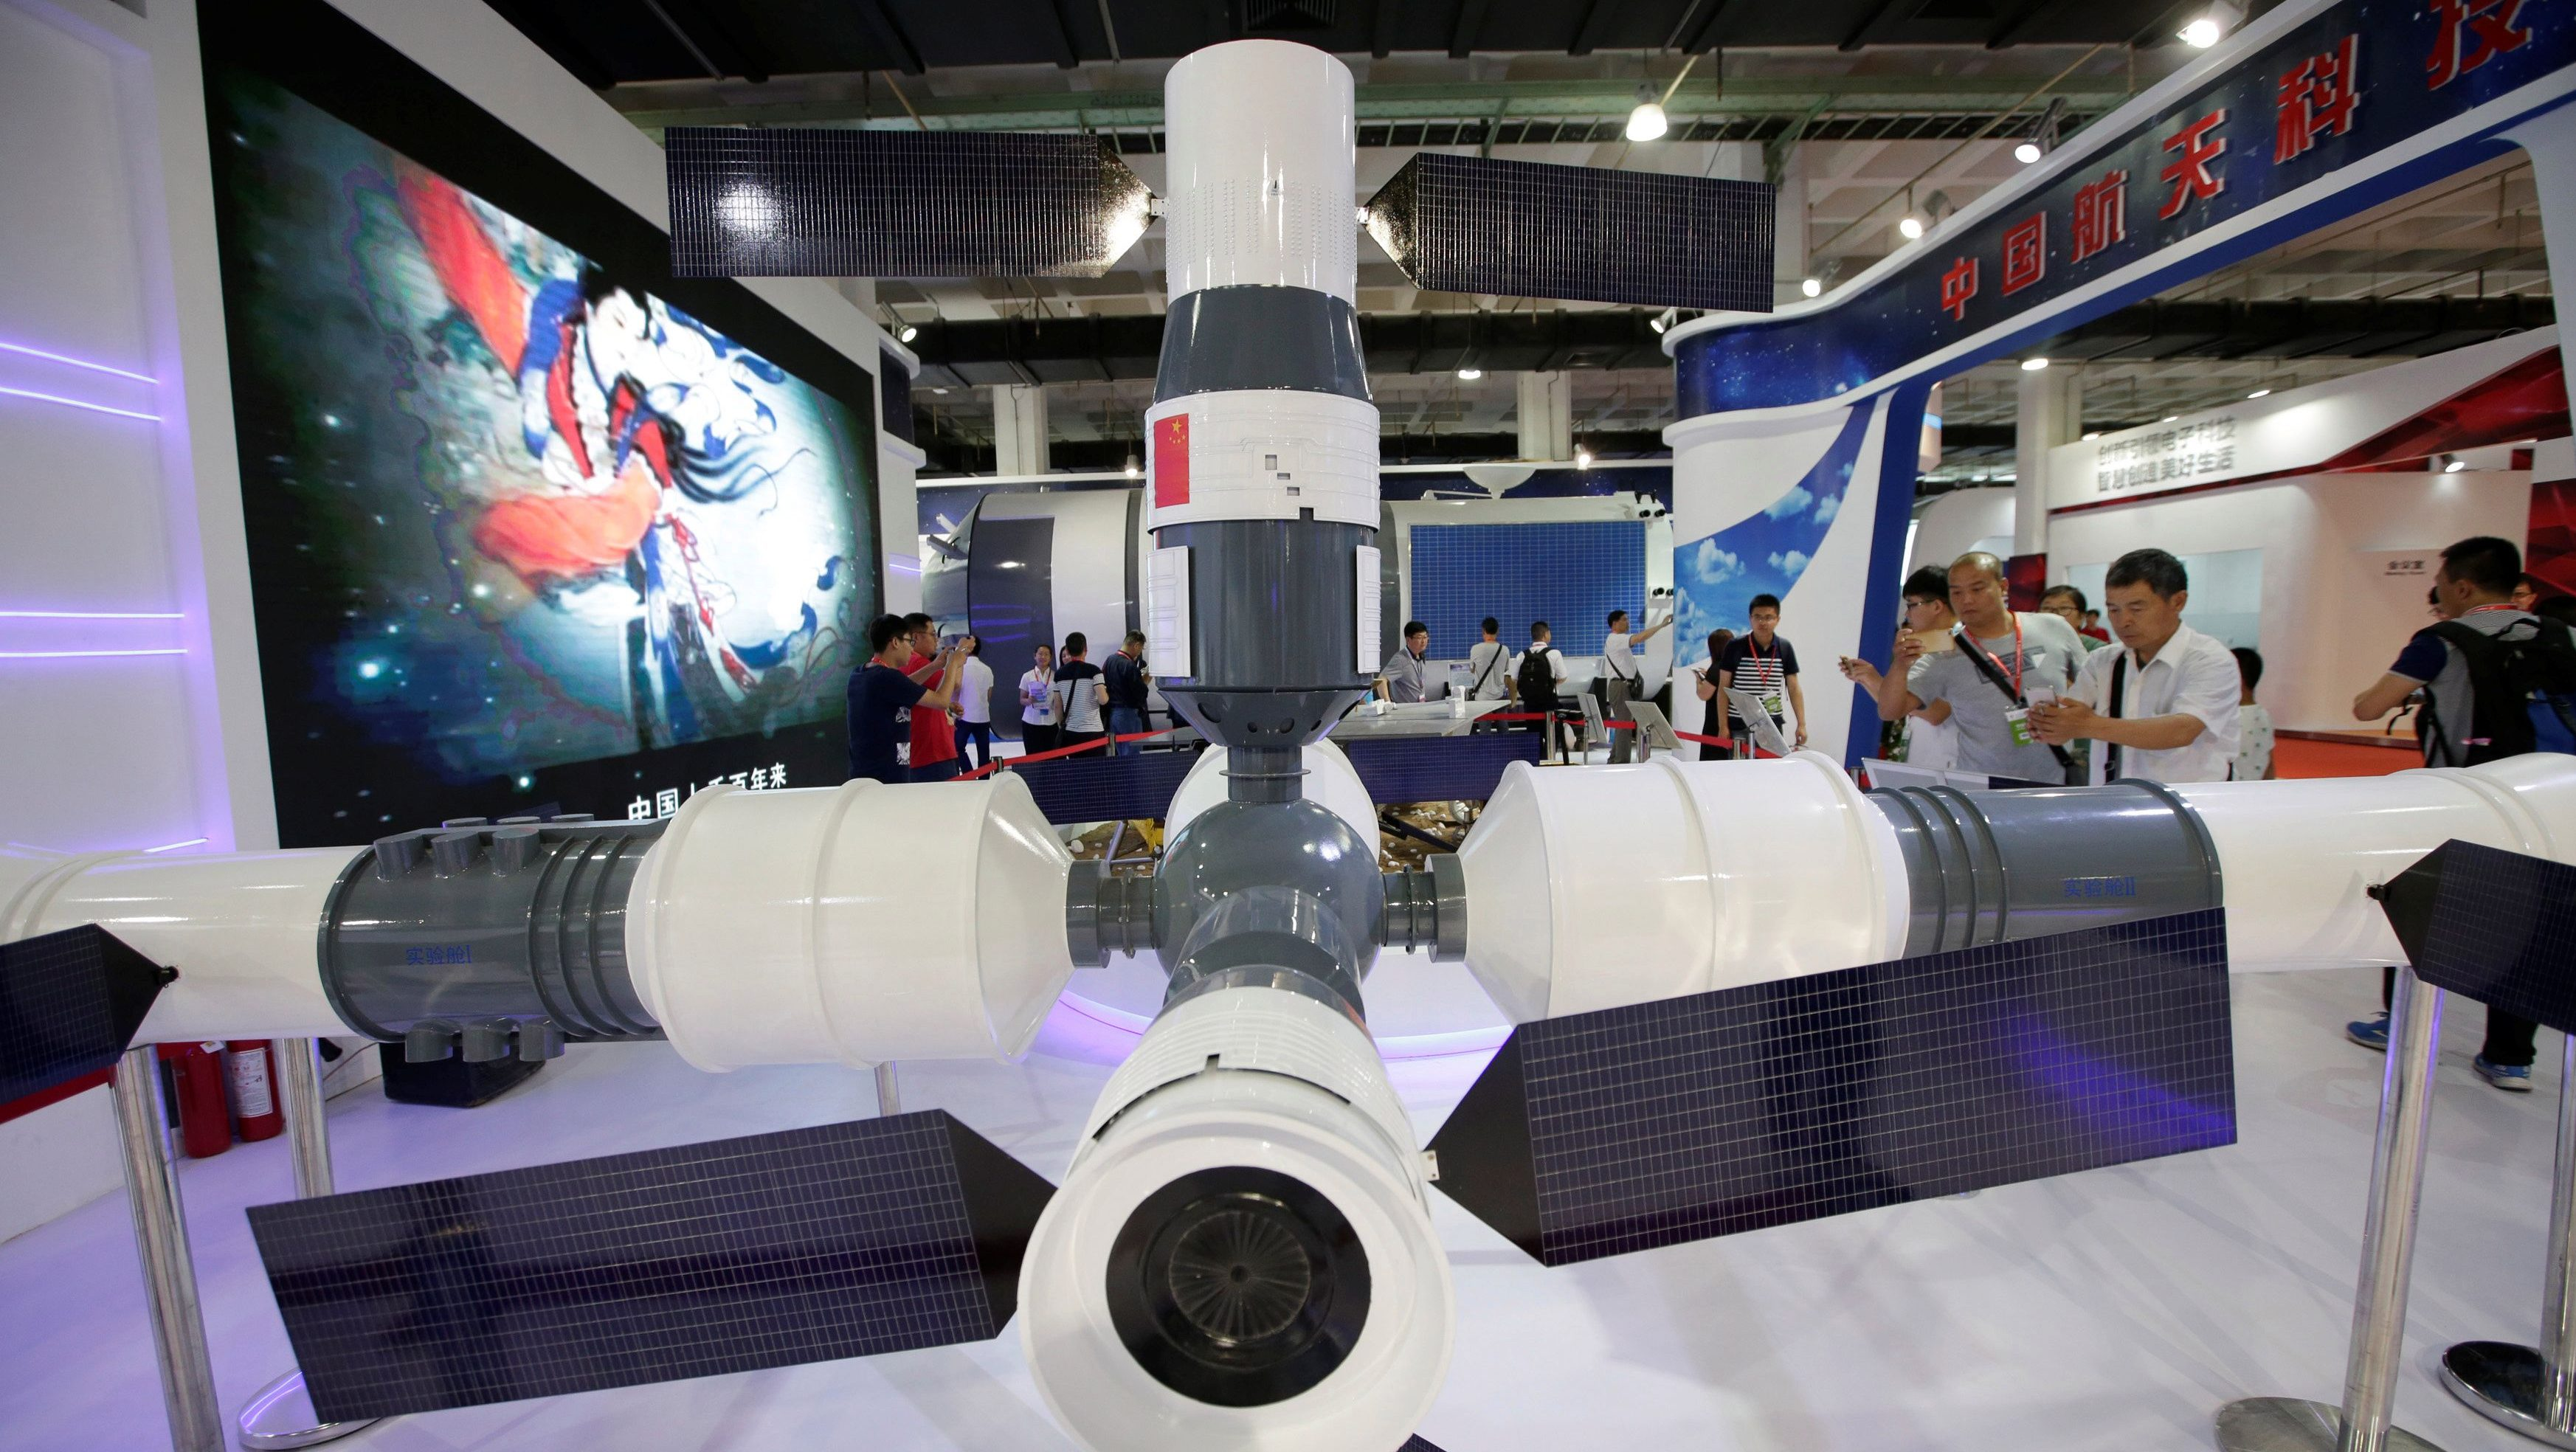 A model of a space station from China Aerospace Science and Technology Corporation is displayed at China Beijing International High-tech Expo in Beijing, China June 8, 2017.